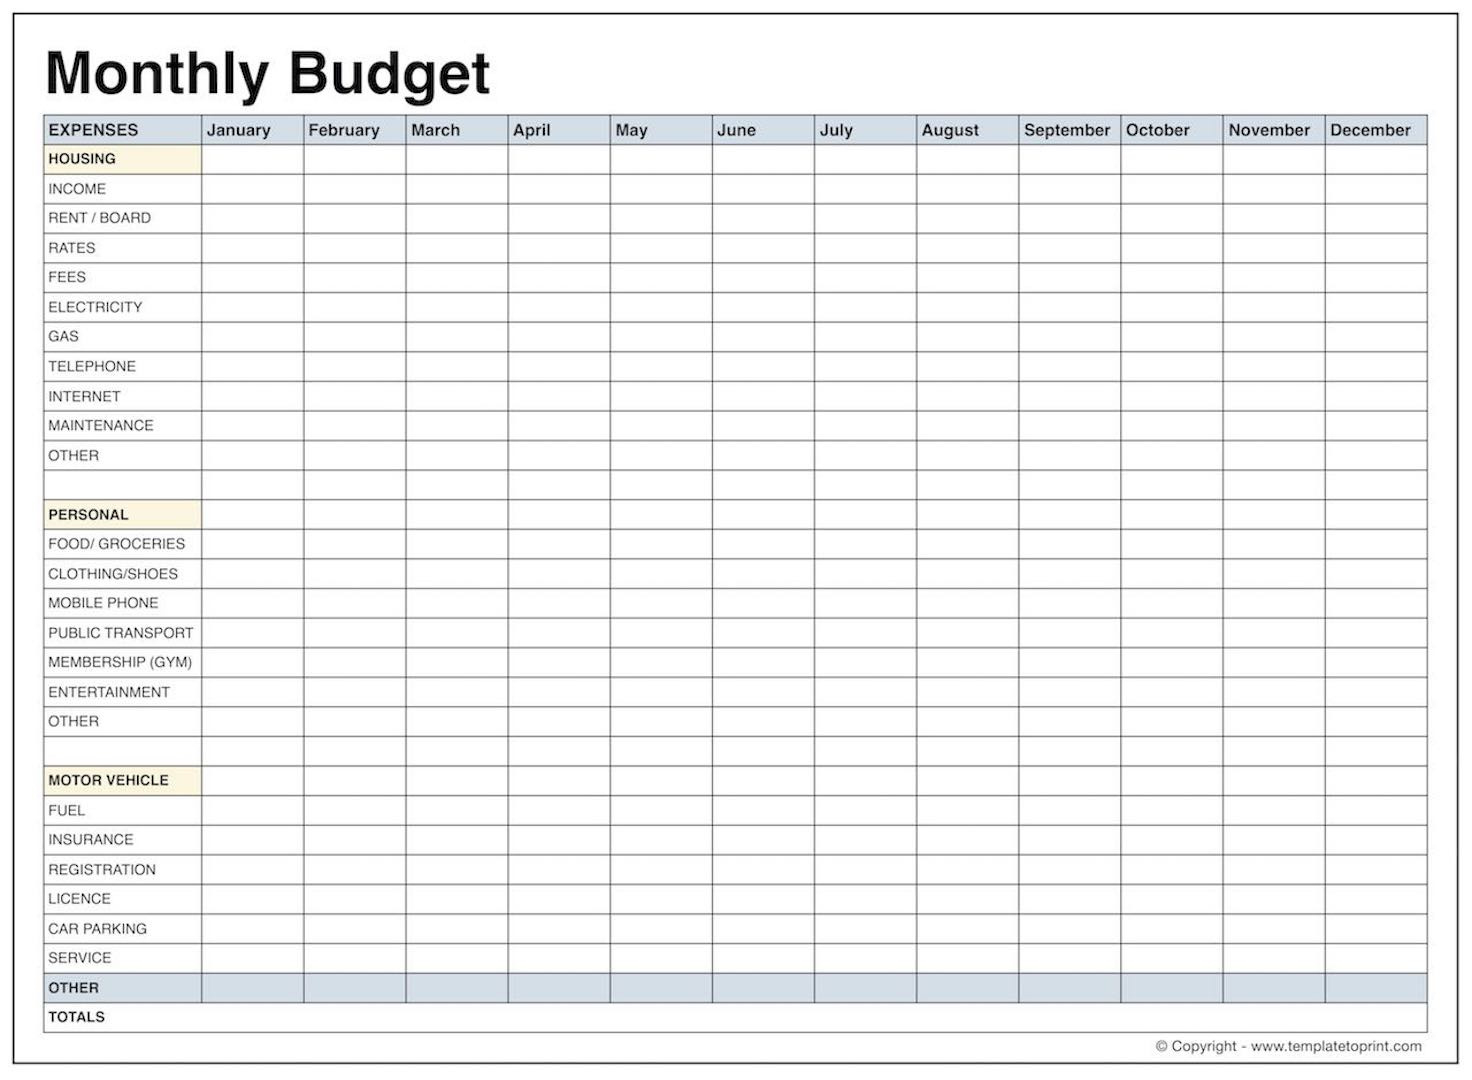 Daily Budget Worksheet Printable